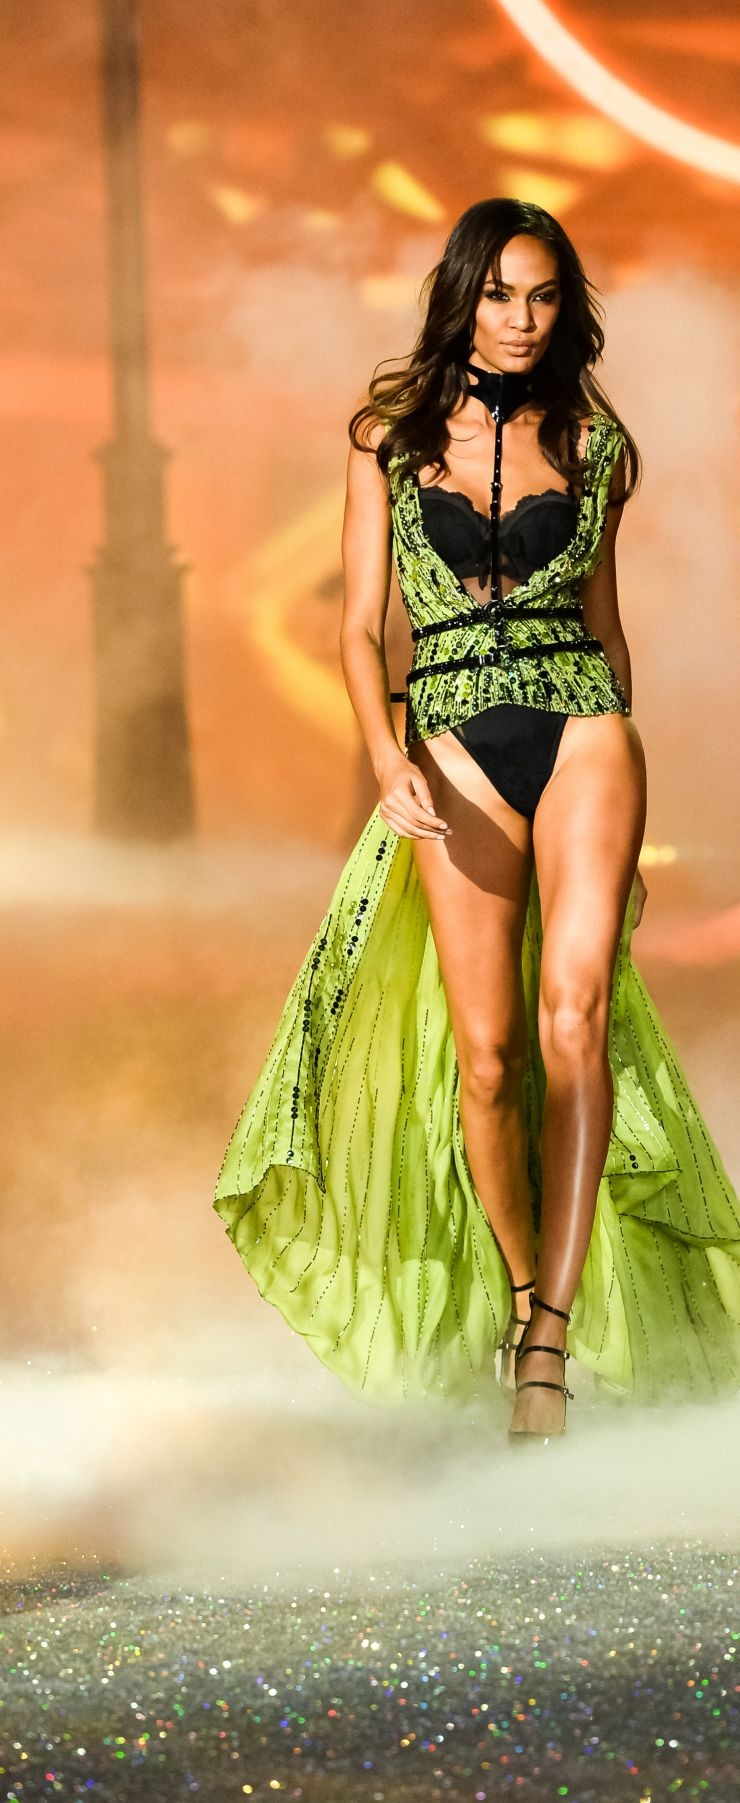 joan-smalls-at-2013-victoria-s-secret-fashion-show-in-new-york_8.jpg - 280.83 KB